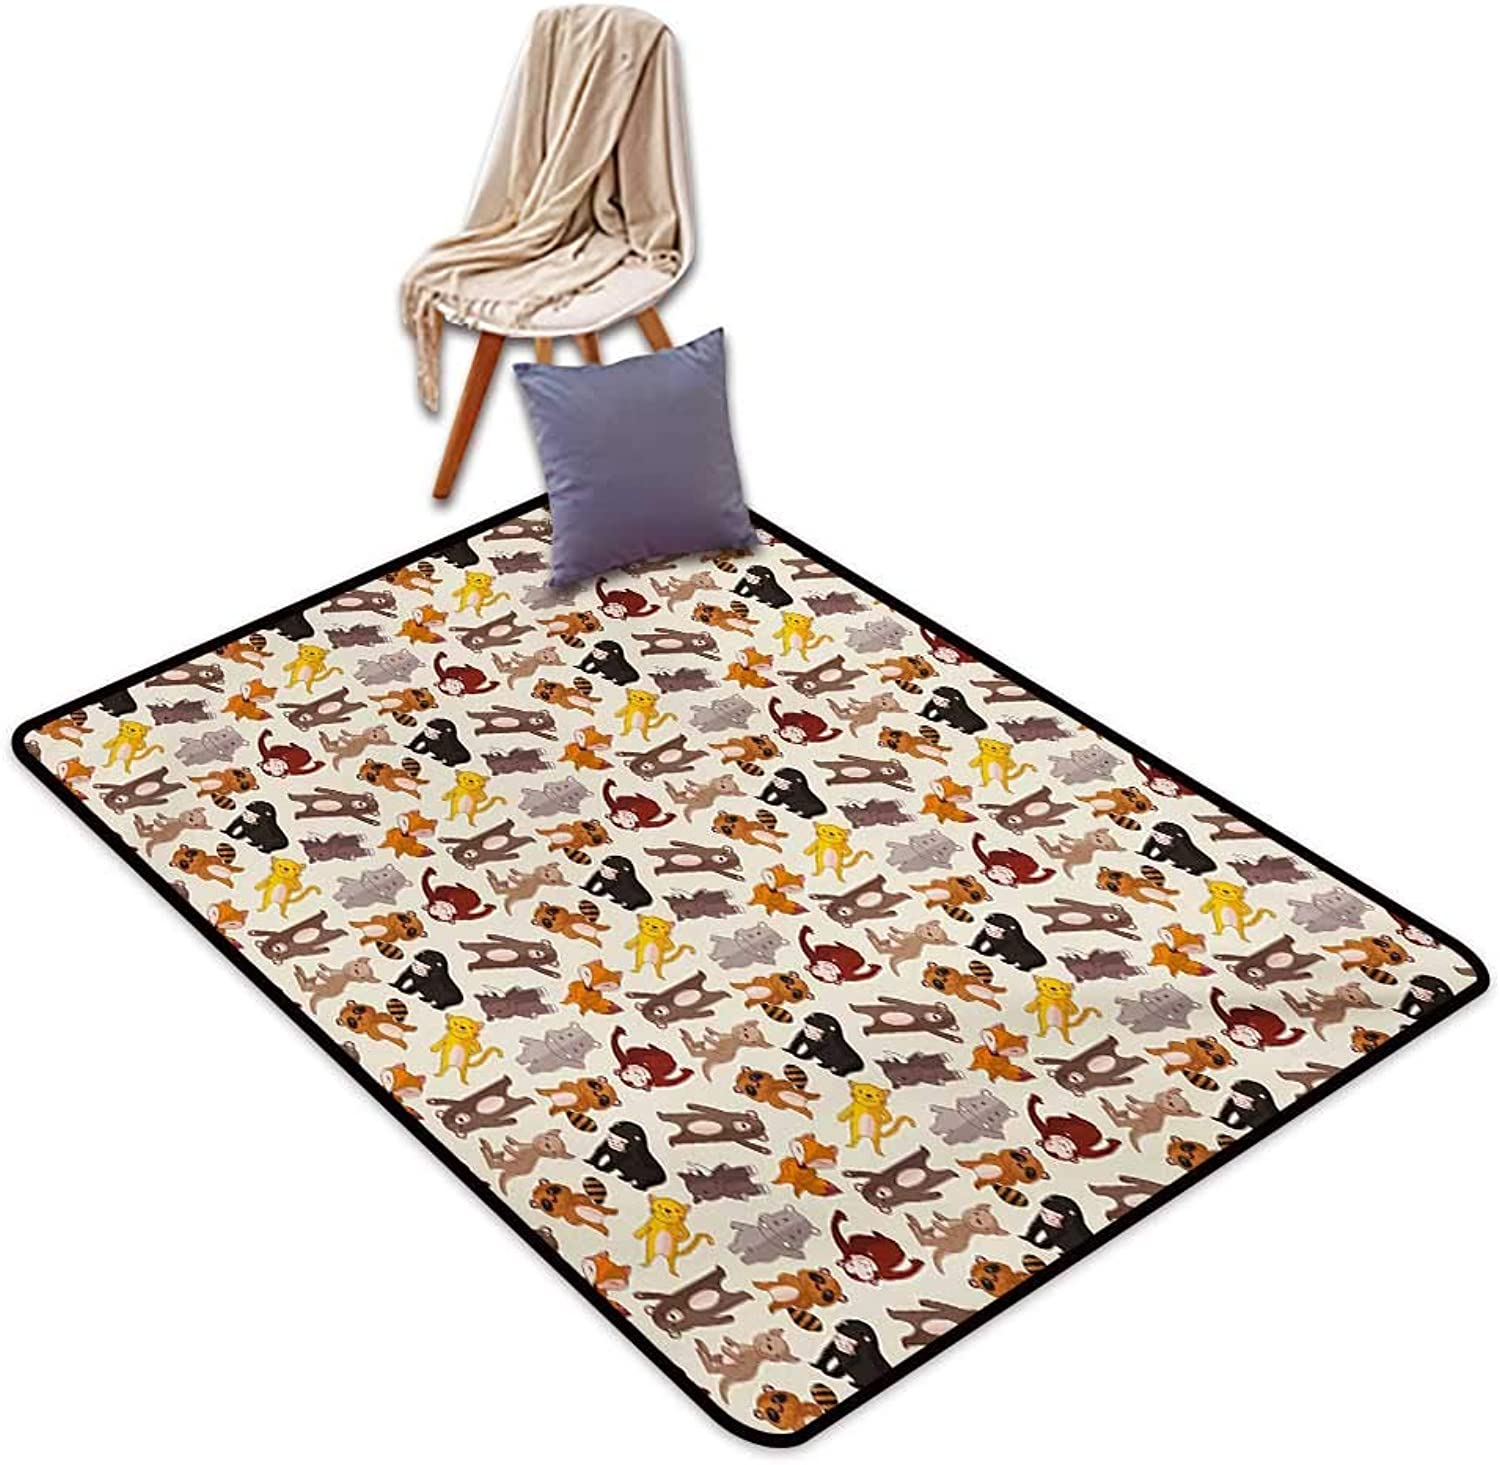 Cartoon Animal Large Outdoor Indoor Rubber Doormat Collection of Friendly African Jungle Animals Happy Mammals Life in Forest Water Absorption, Anti-Skid and Oil Proof 48  Wx59 L Multicolor